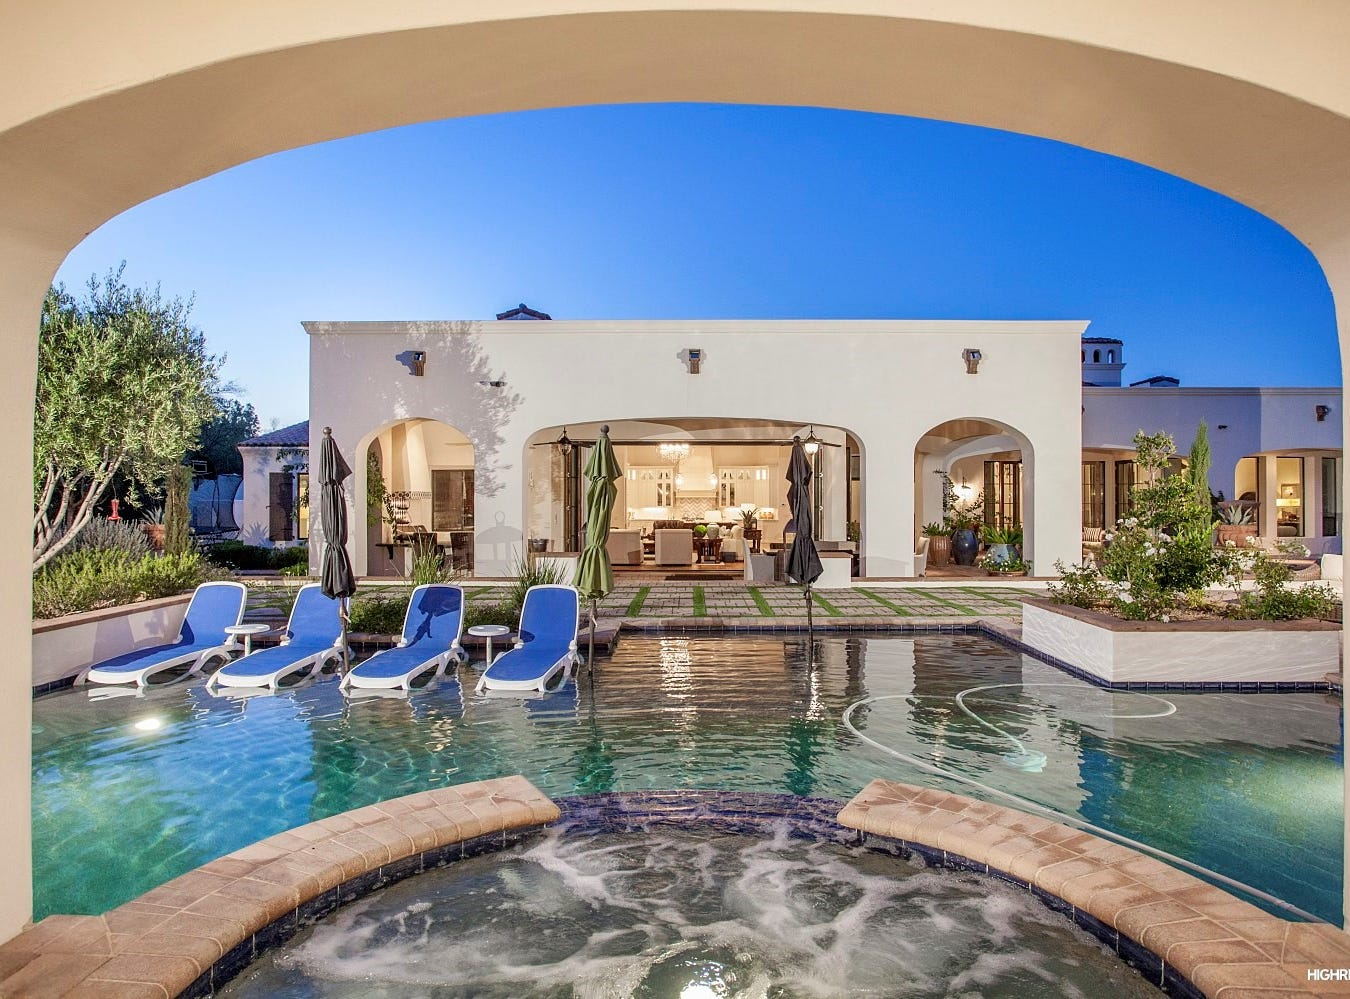 The Paradise Valley estate purchased by Thad and Maryellyn Miller, has a resort-style backyard that includes a gazebo with a swim-up bar.